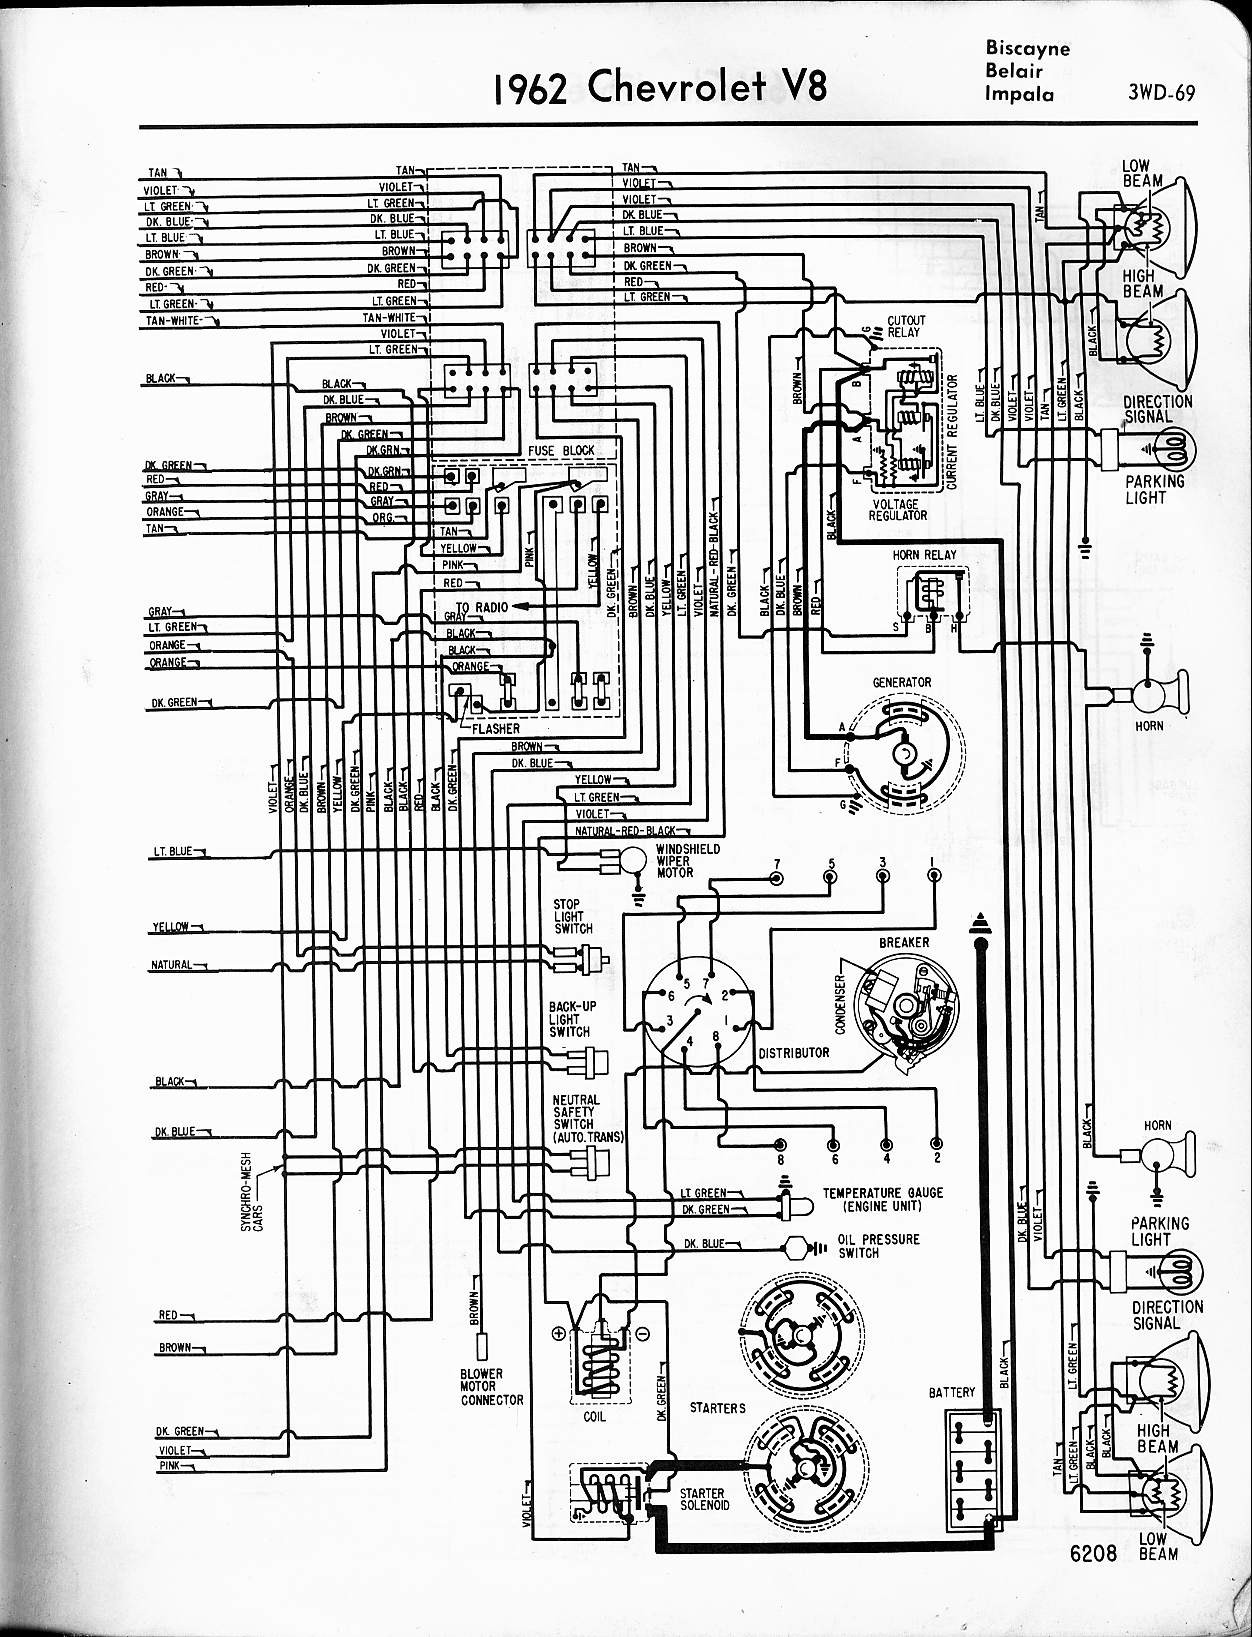 Awesome 1962 Chevy Wiring Diagrams Wiring Diagram Wiring Cloud Hemtegremohammedshrineorg